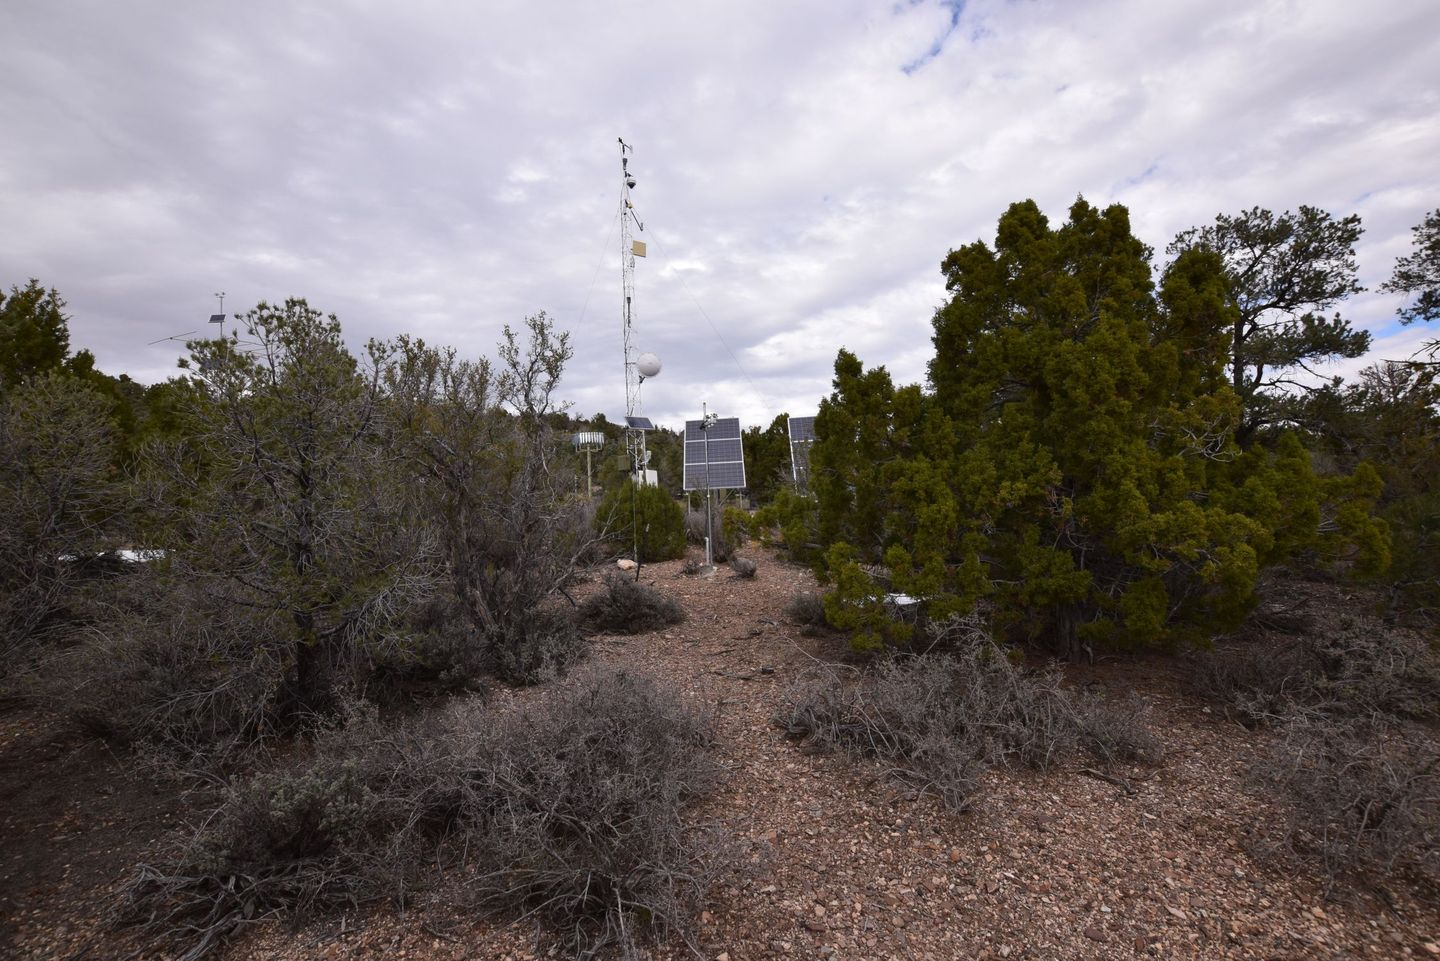 Pine Nut Road - Waypoint 7: Weather Station